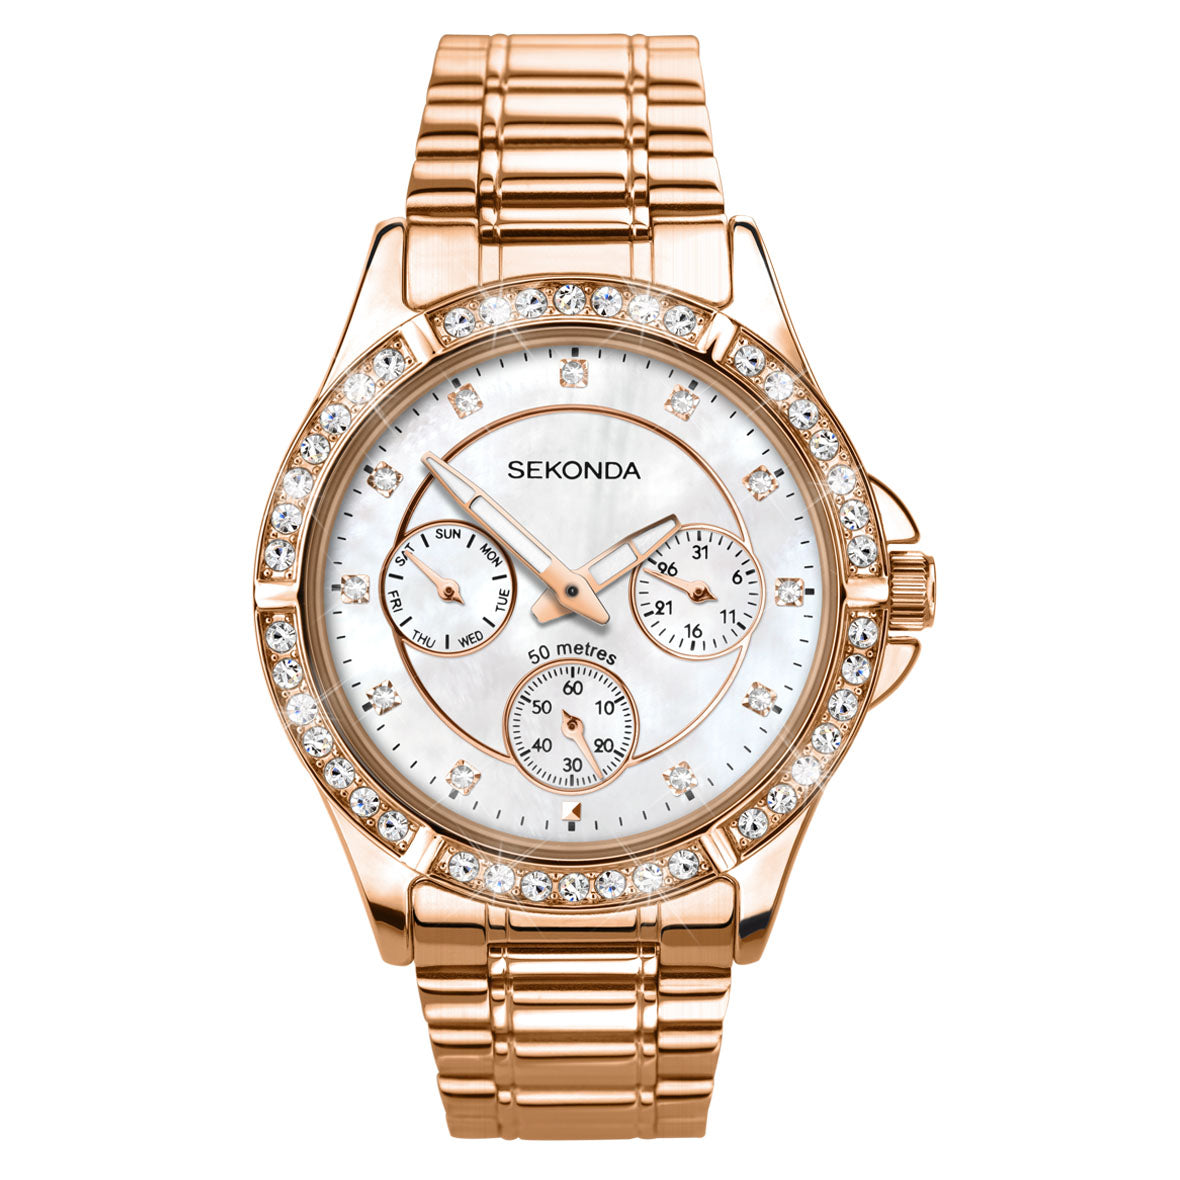 61c413f4d06 Sekonda Editions Women s Rose Gold Plated Watch 4740